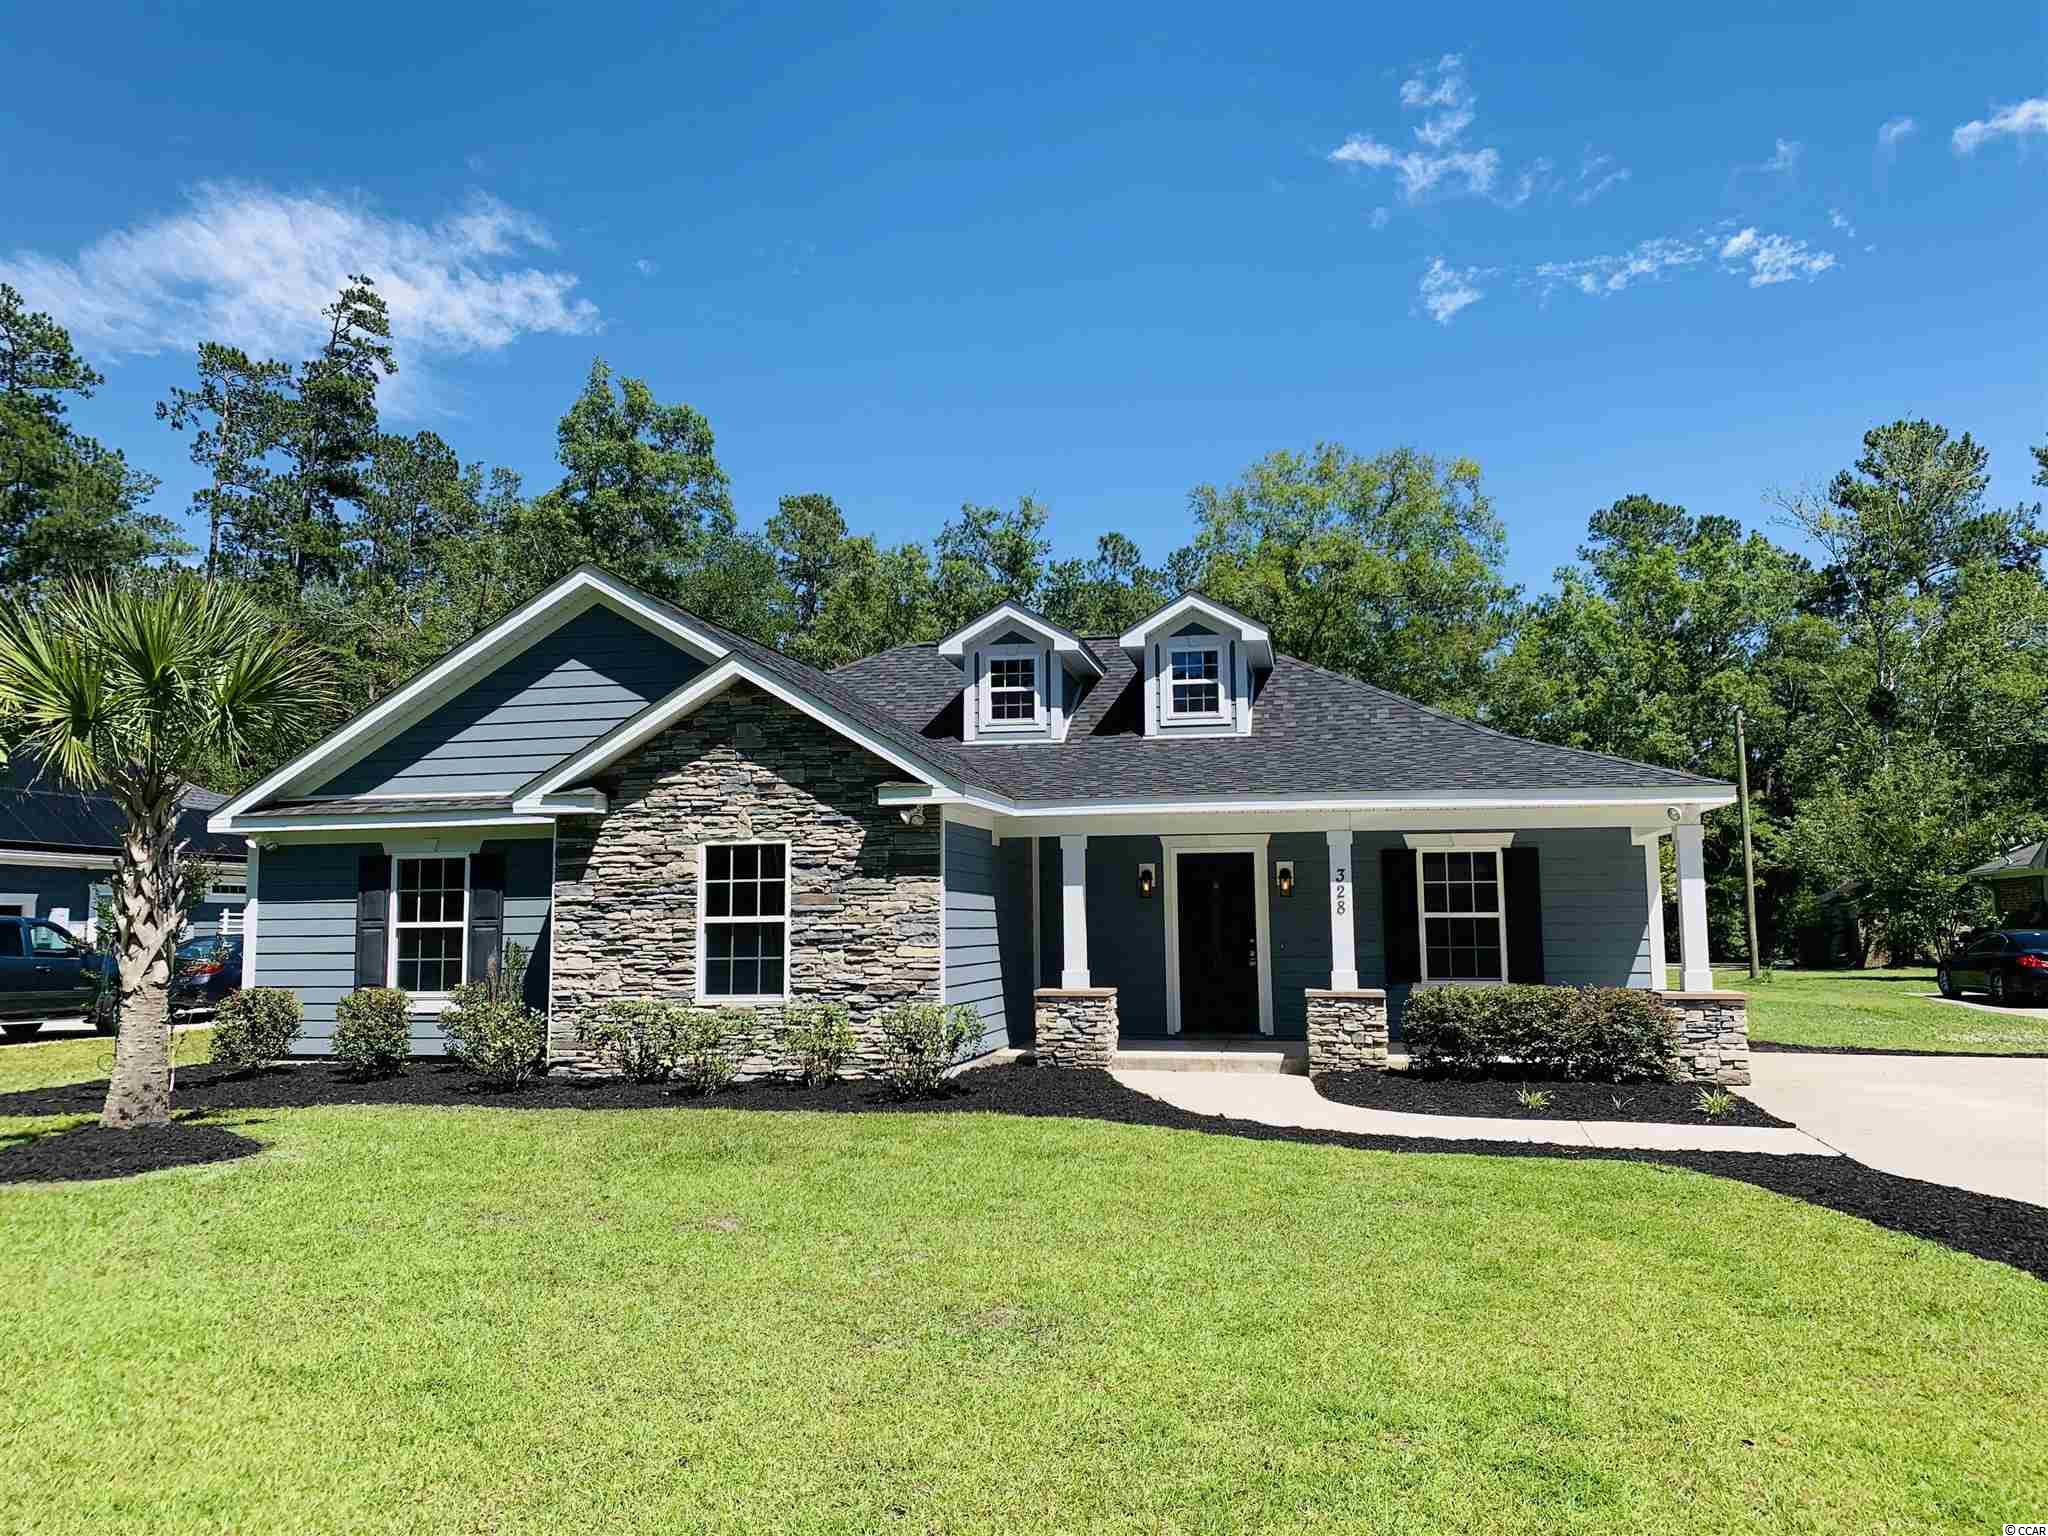 Amazing custom built home on large lot in desirable Maple section of Conway with NO HOA!!!  3 bedroom and 2 bath home with an office. Brand new LVT flooring throughout, stainless steel appliances, and granite countertops.  .88 acre lot with no HOA make this a must see!!